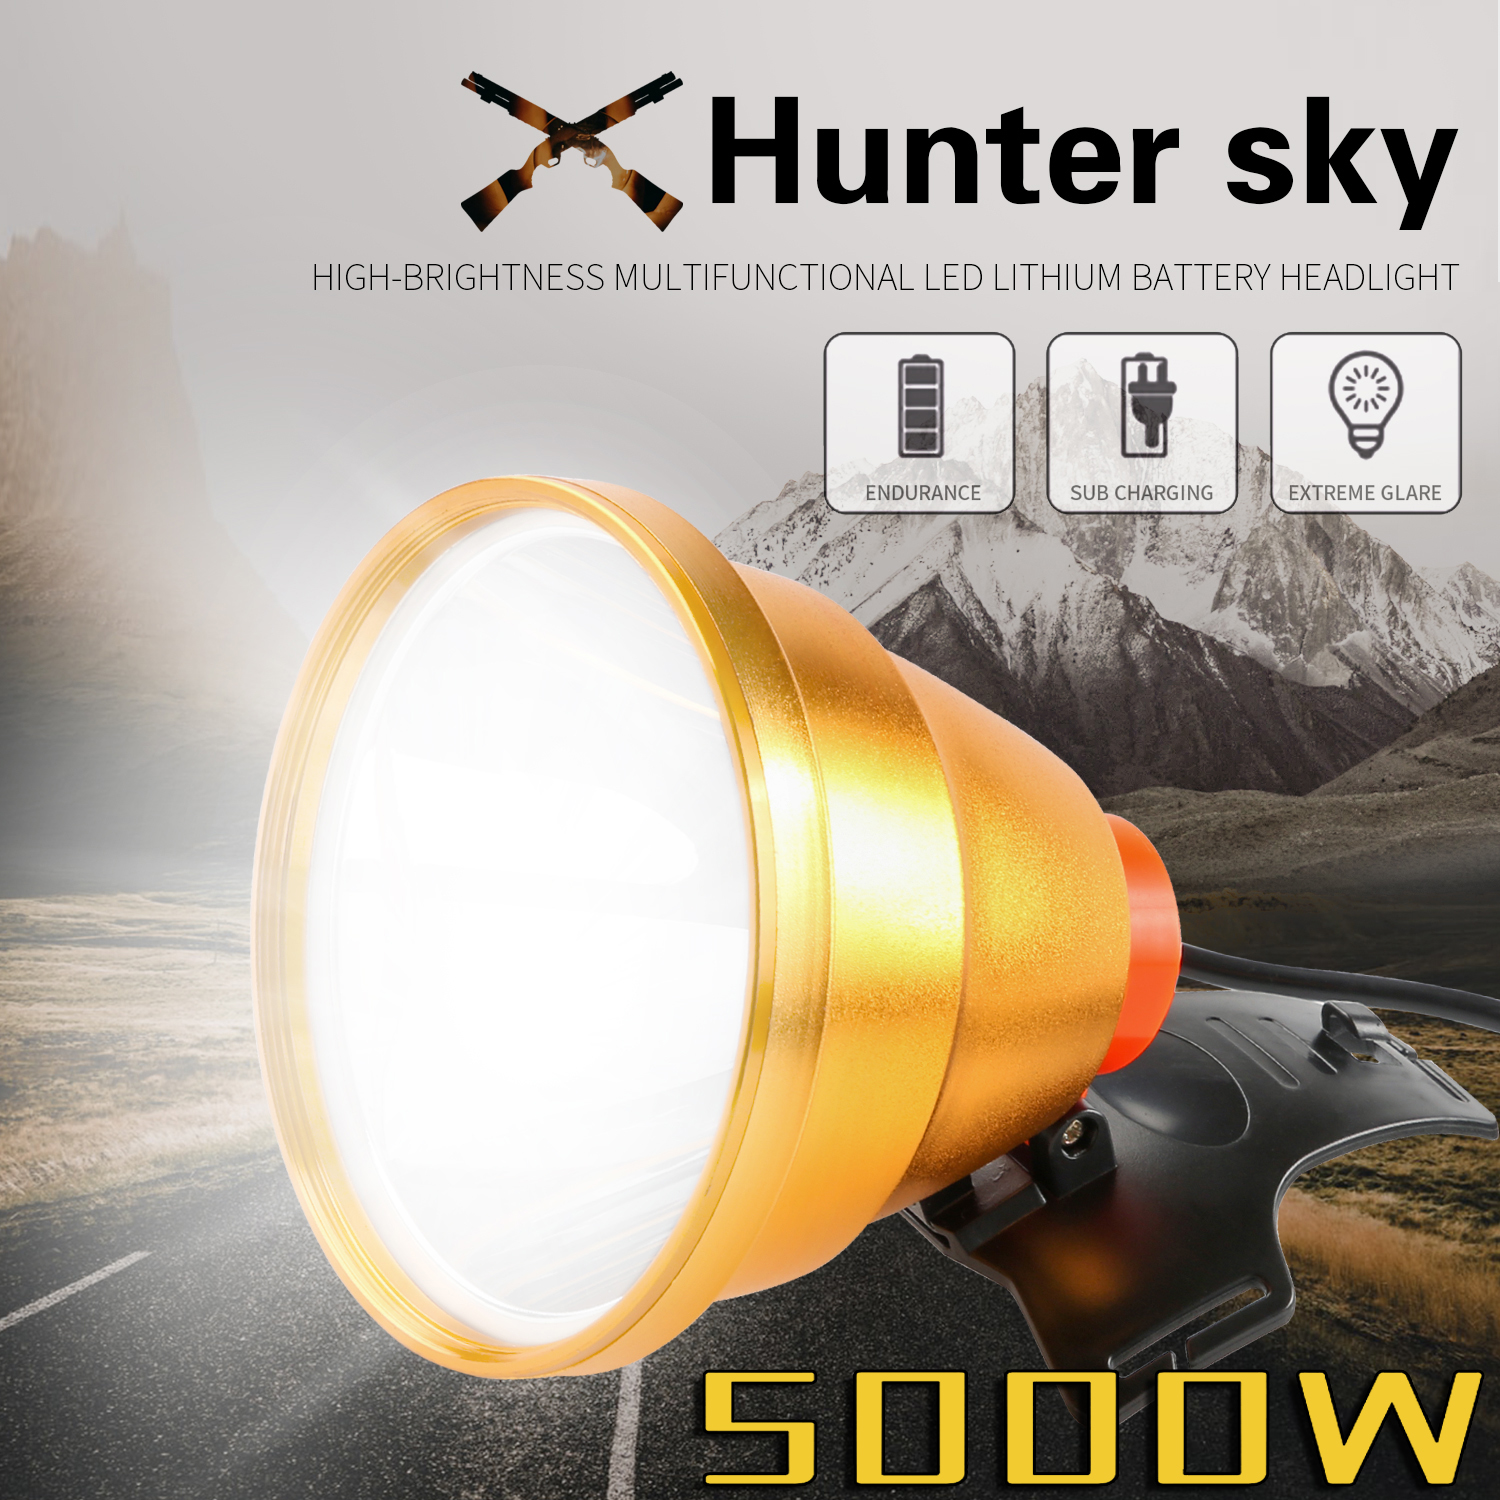 Huntersky IR Sensor Headlight USB Rechargeable high brightness Induction LED Headlamp Fishing Head Light Lamp Lantern fleshlight